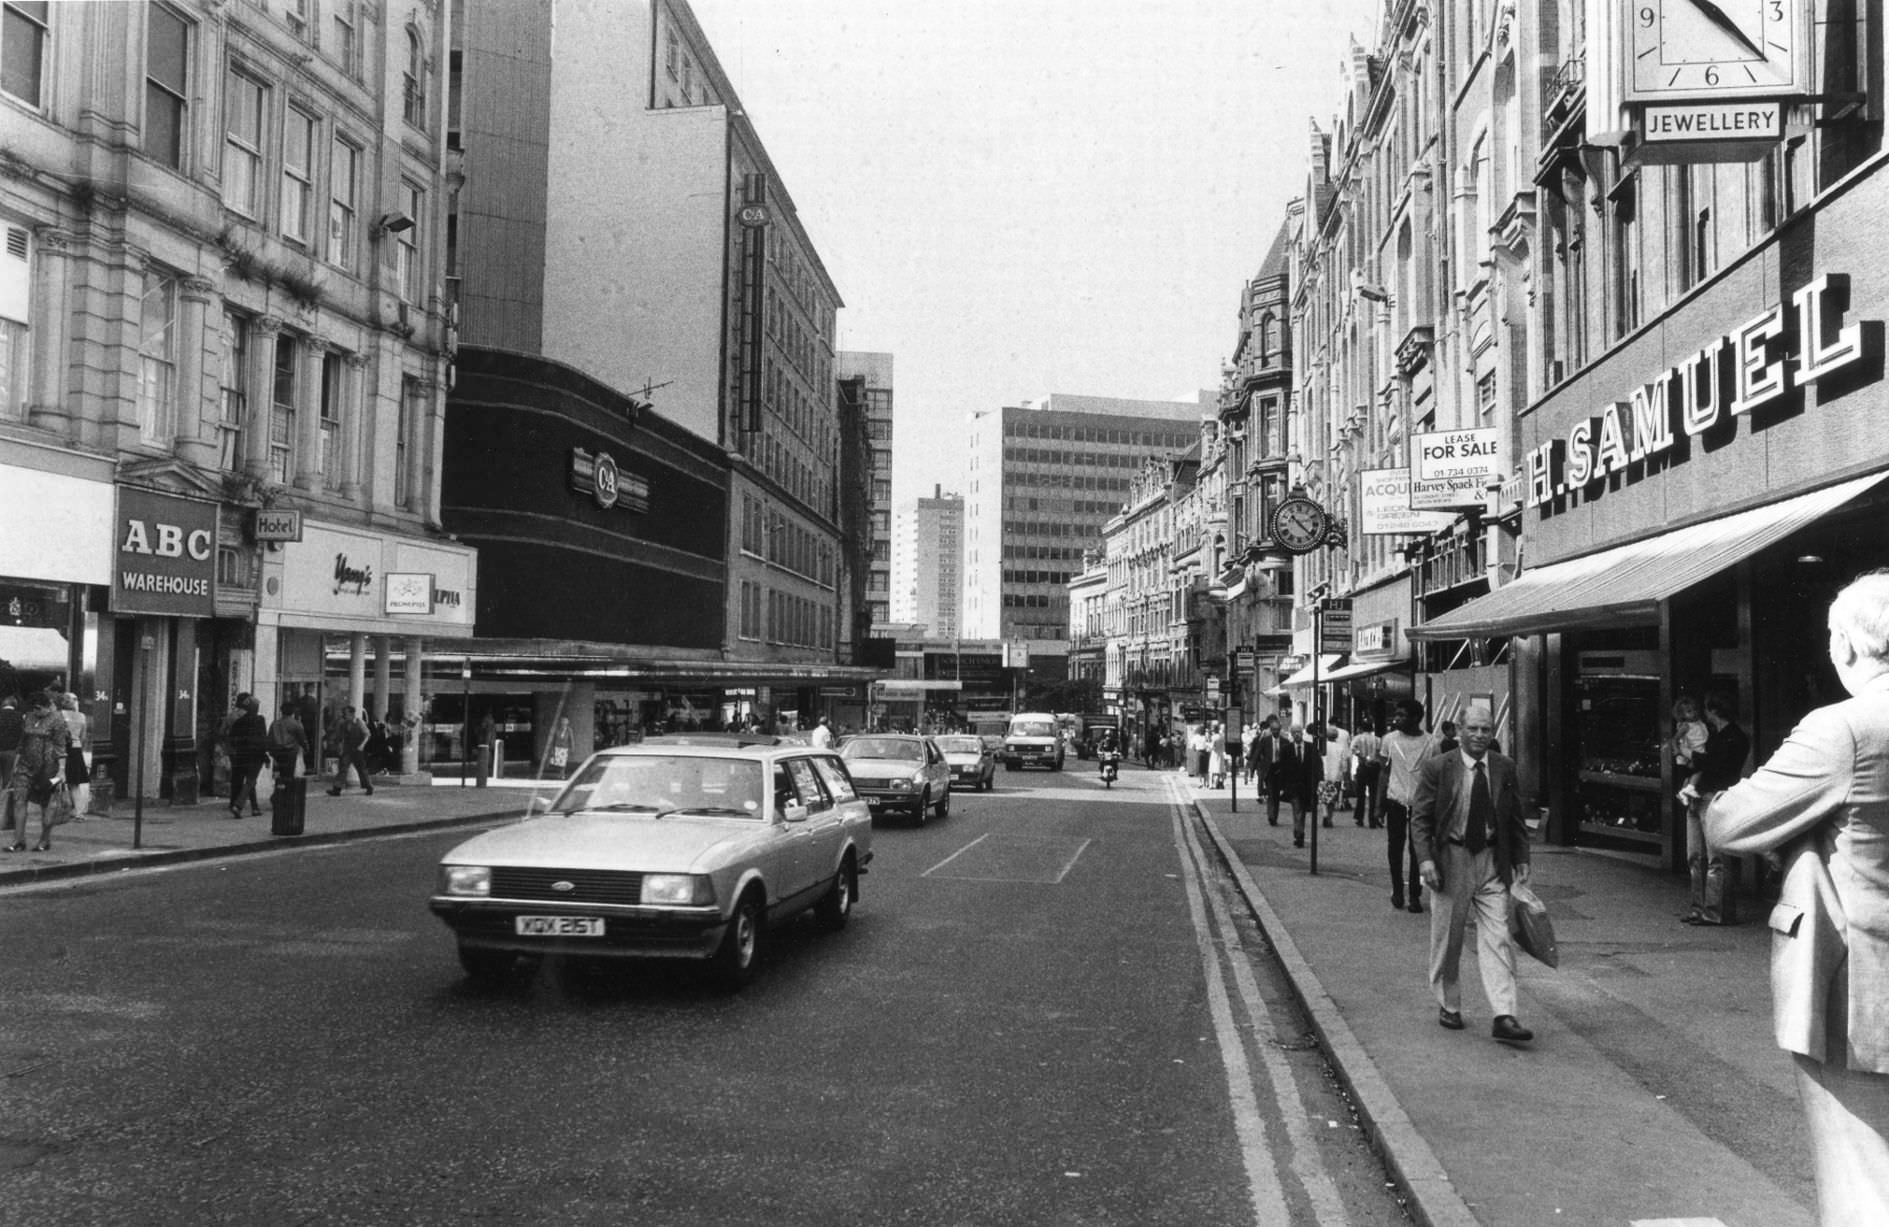 Corporation Street showing some of the shops including C&A, ABC Warehouse and H. Samuel jewellers, 22nd July 1983.